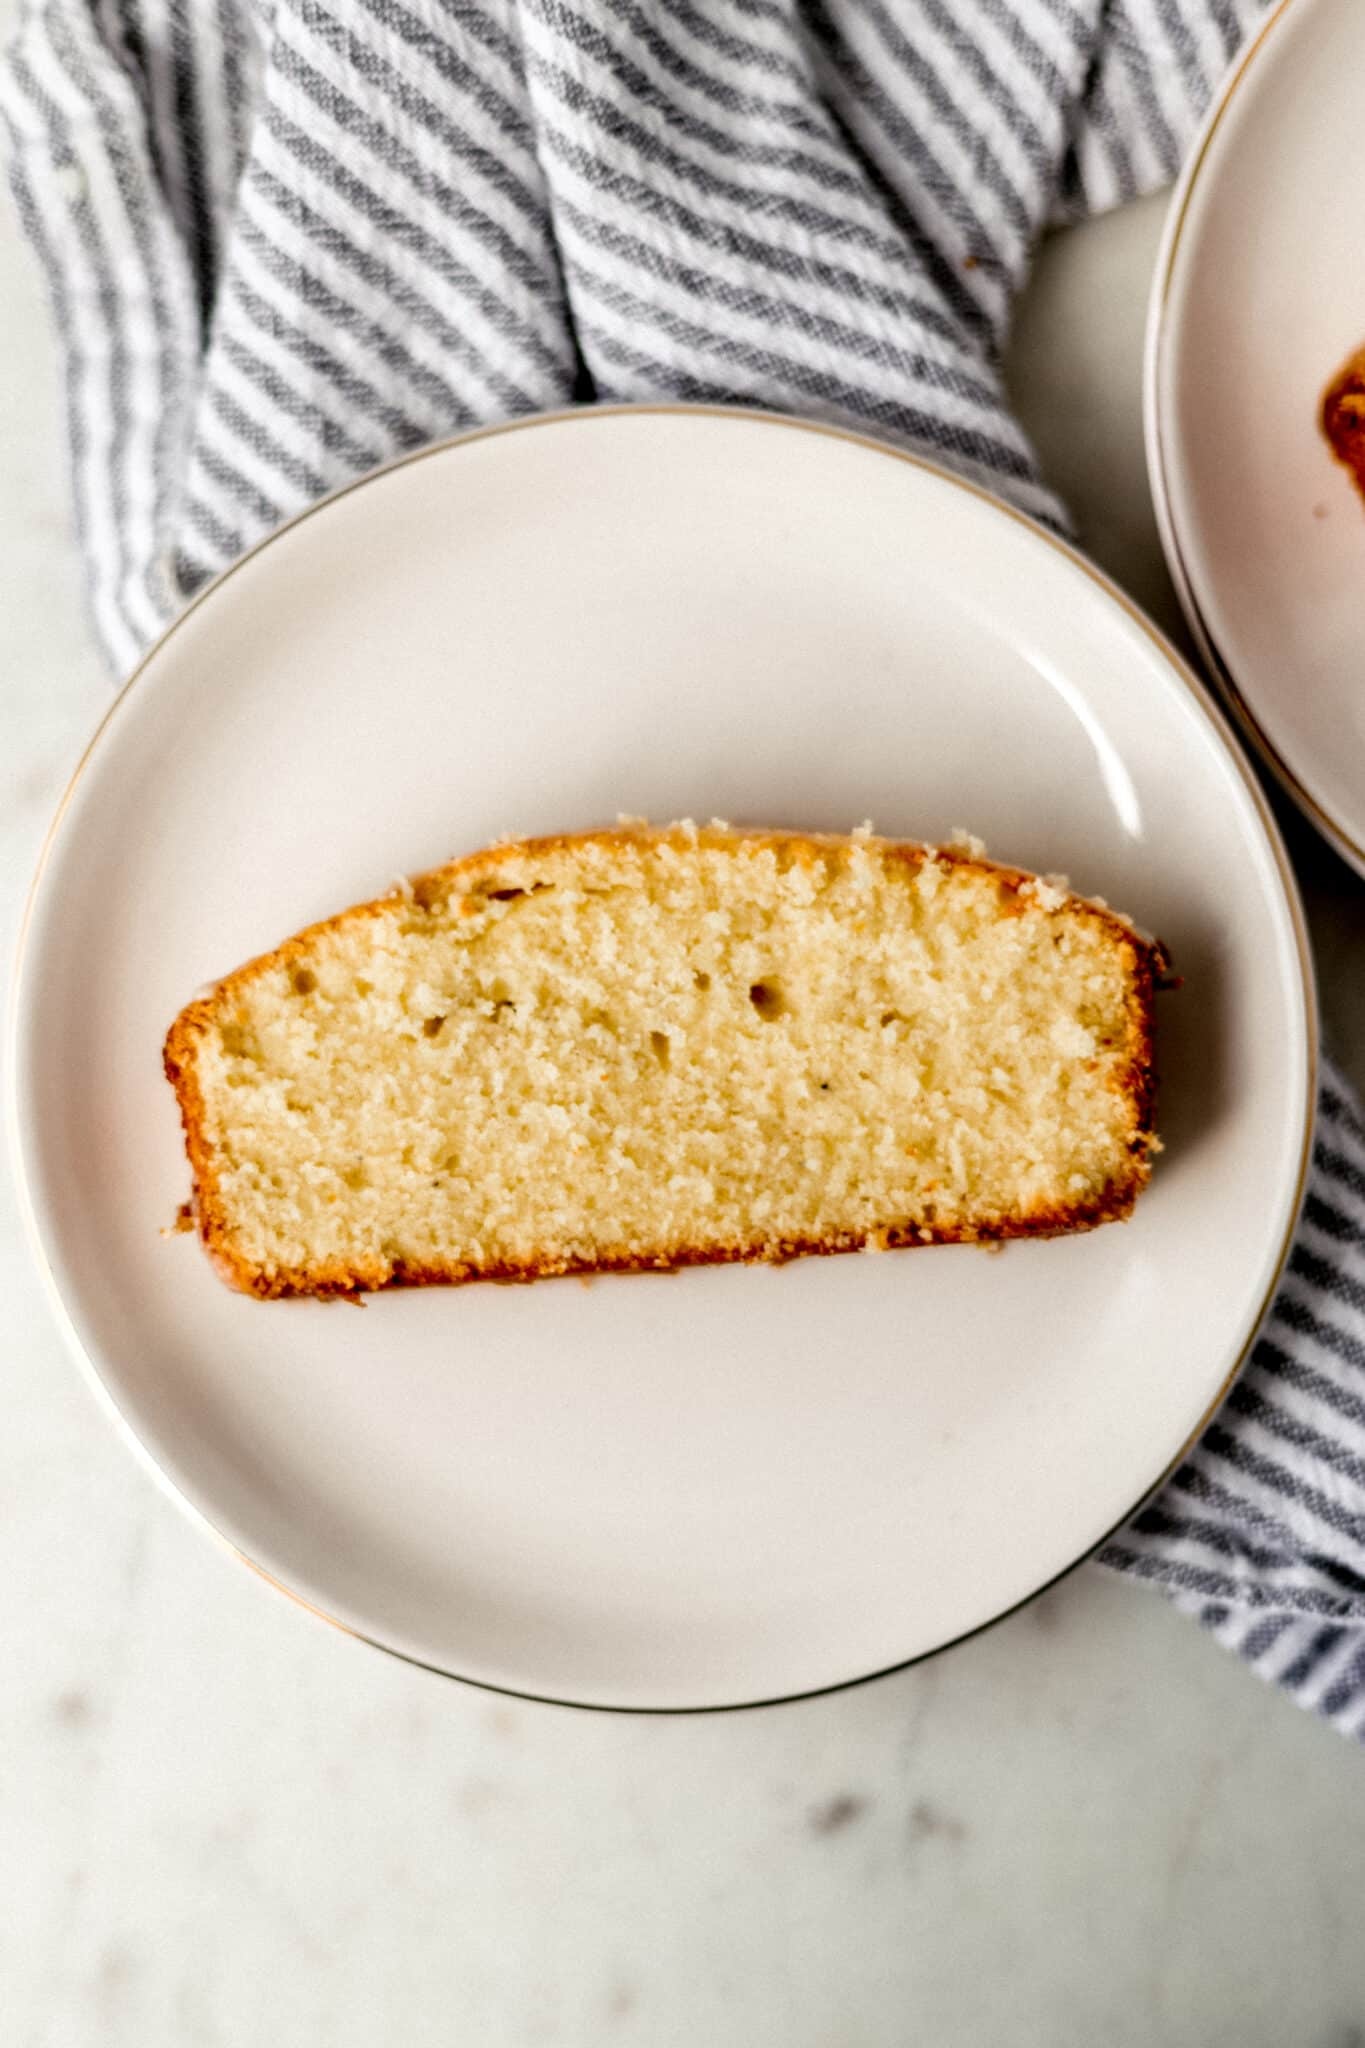 slice of eggnog pound cake on a plate with a napkin